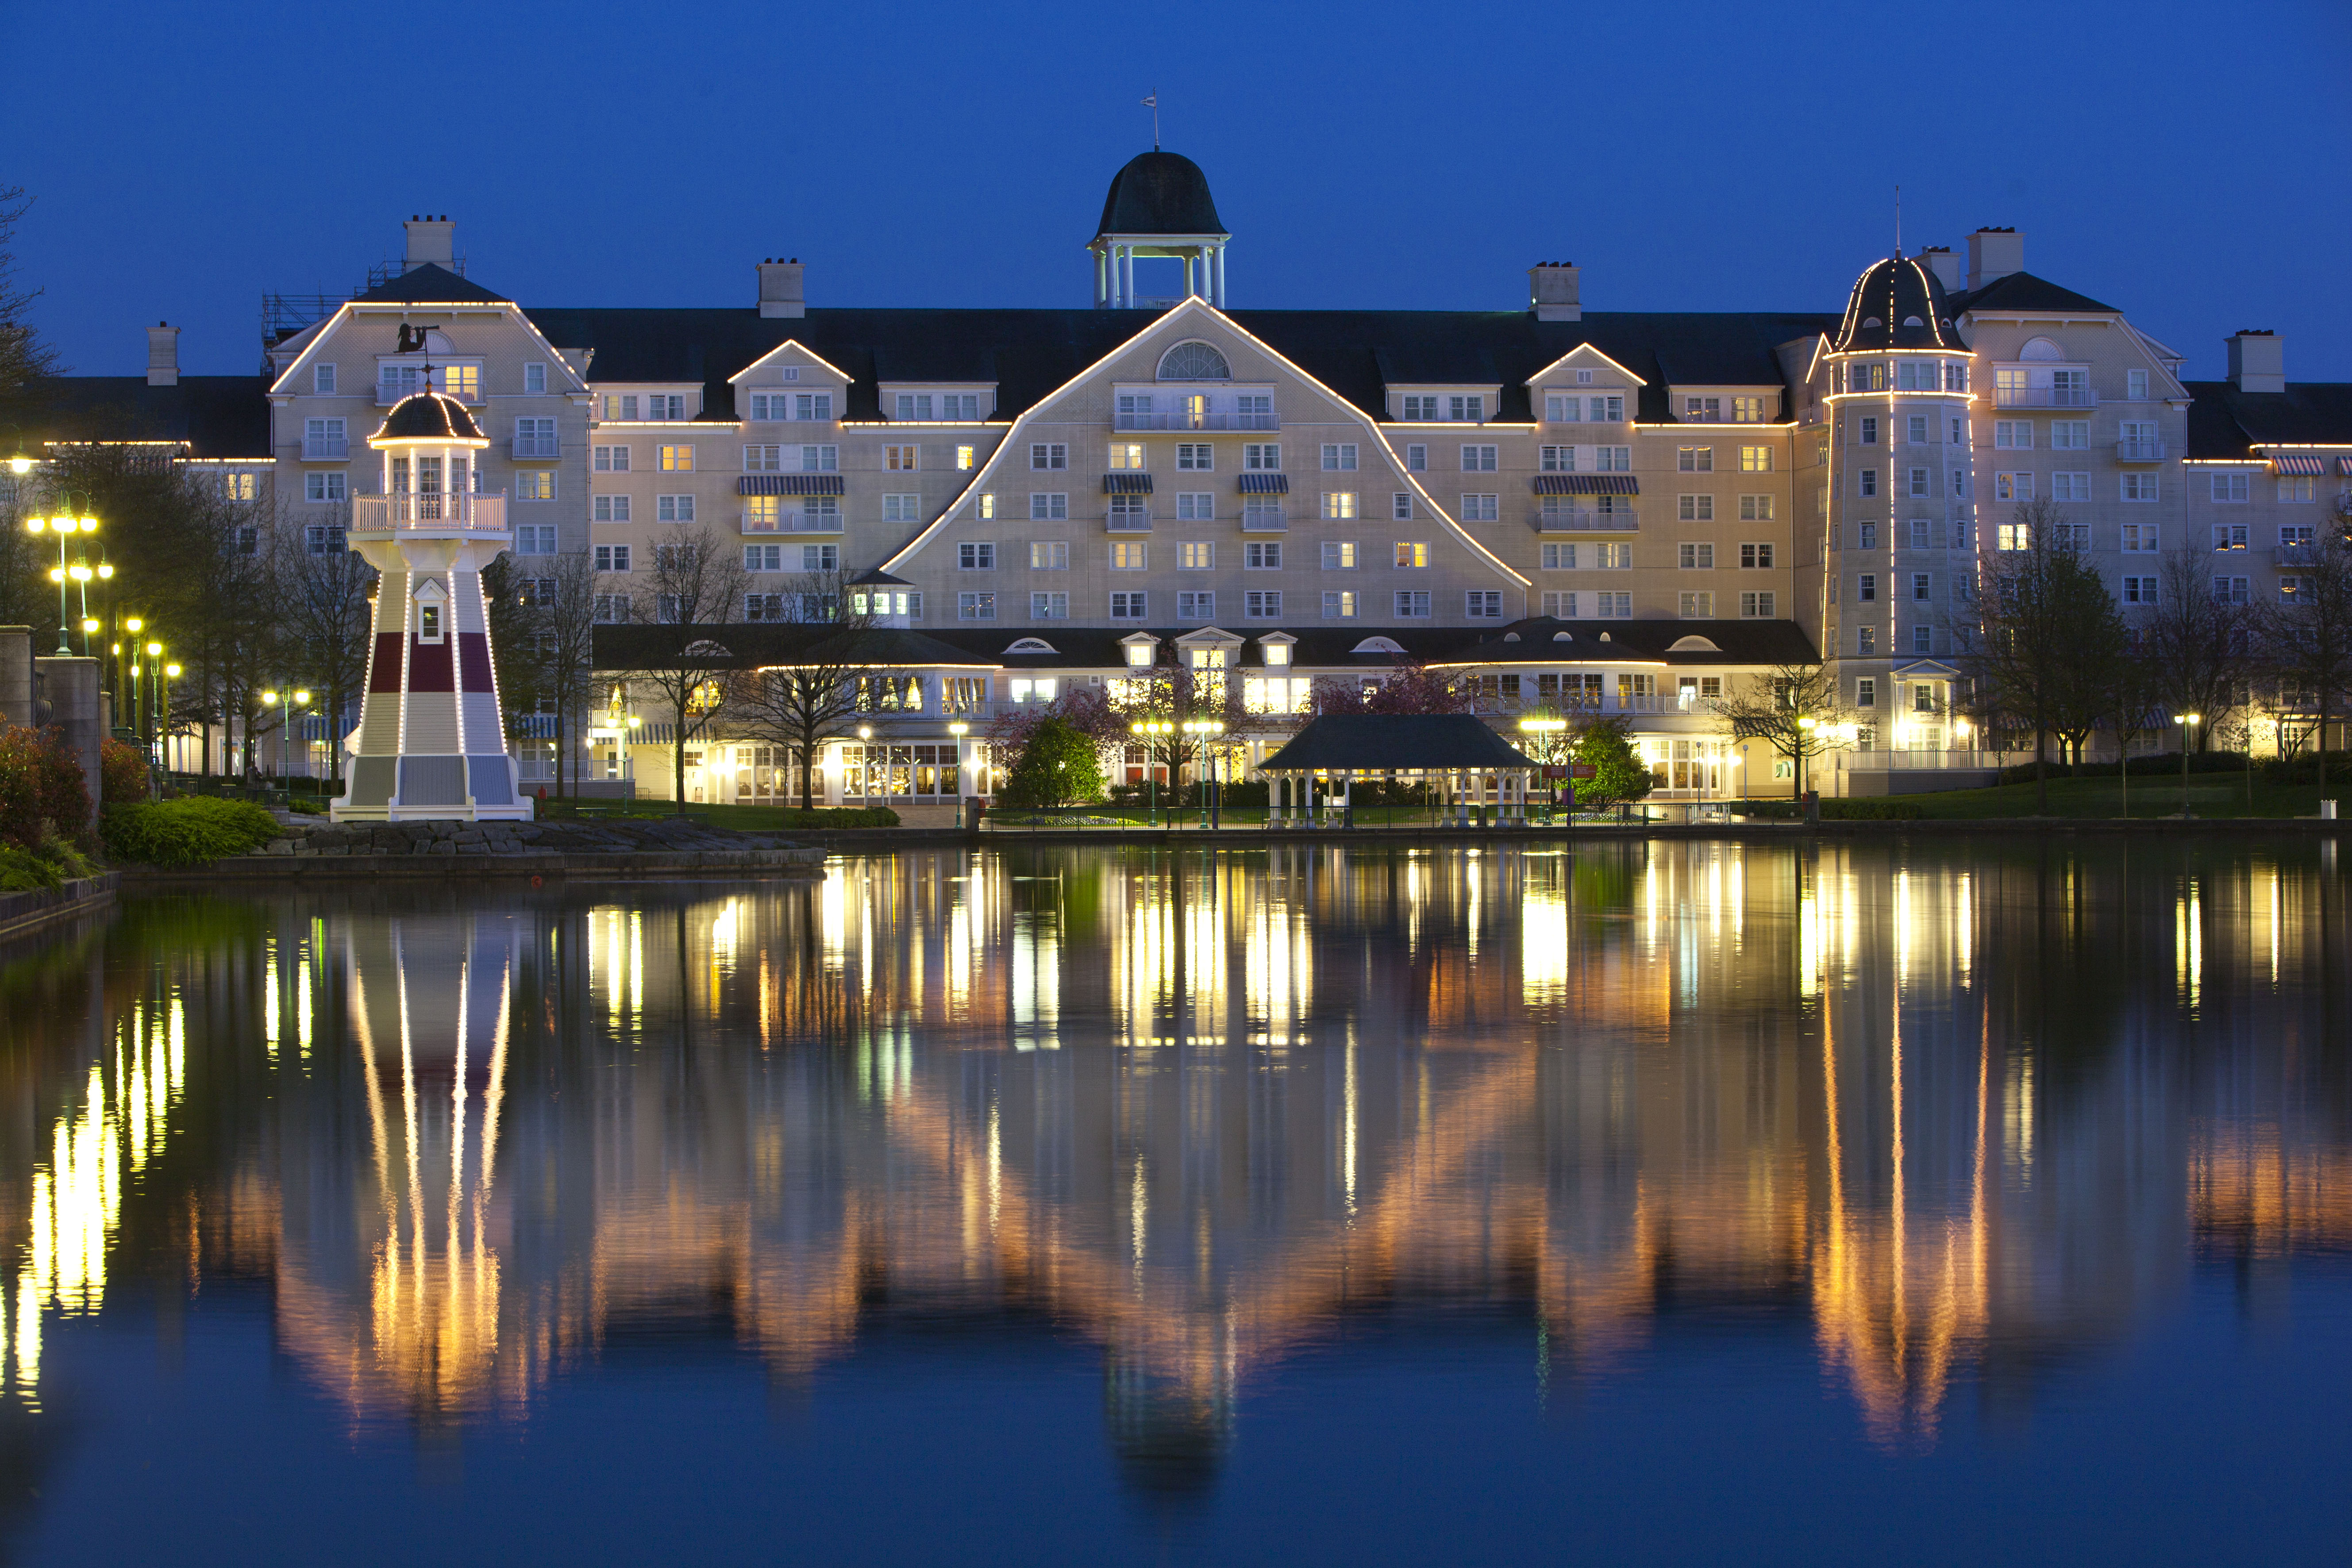 Disney's Hotel Newport Bay Club